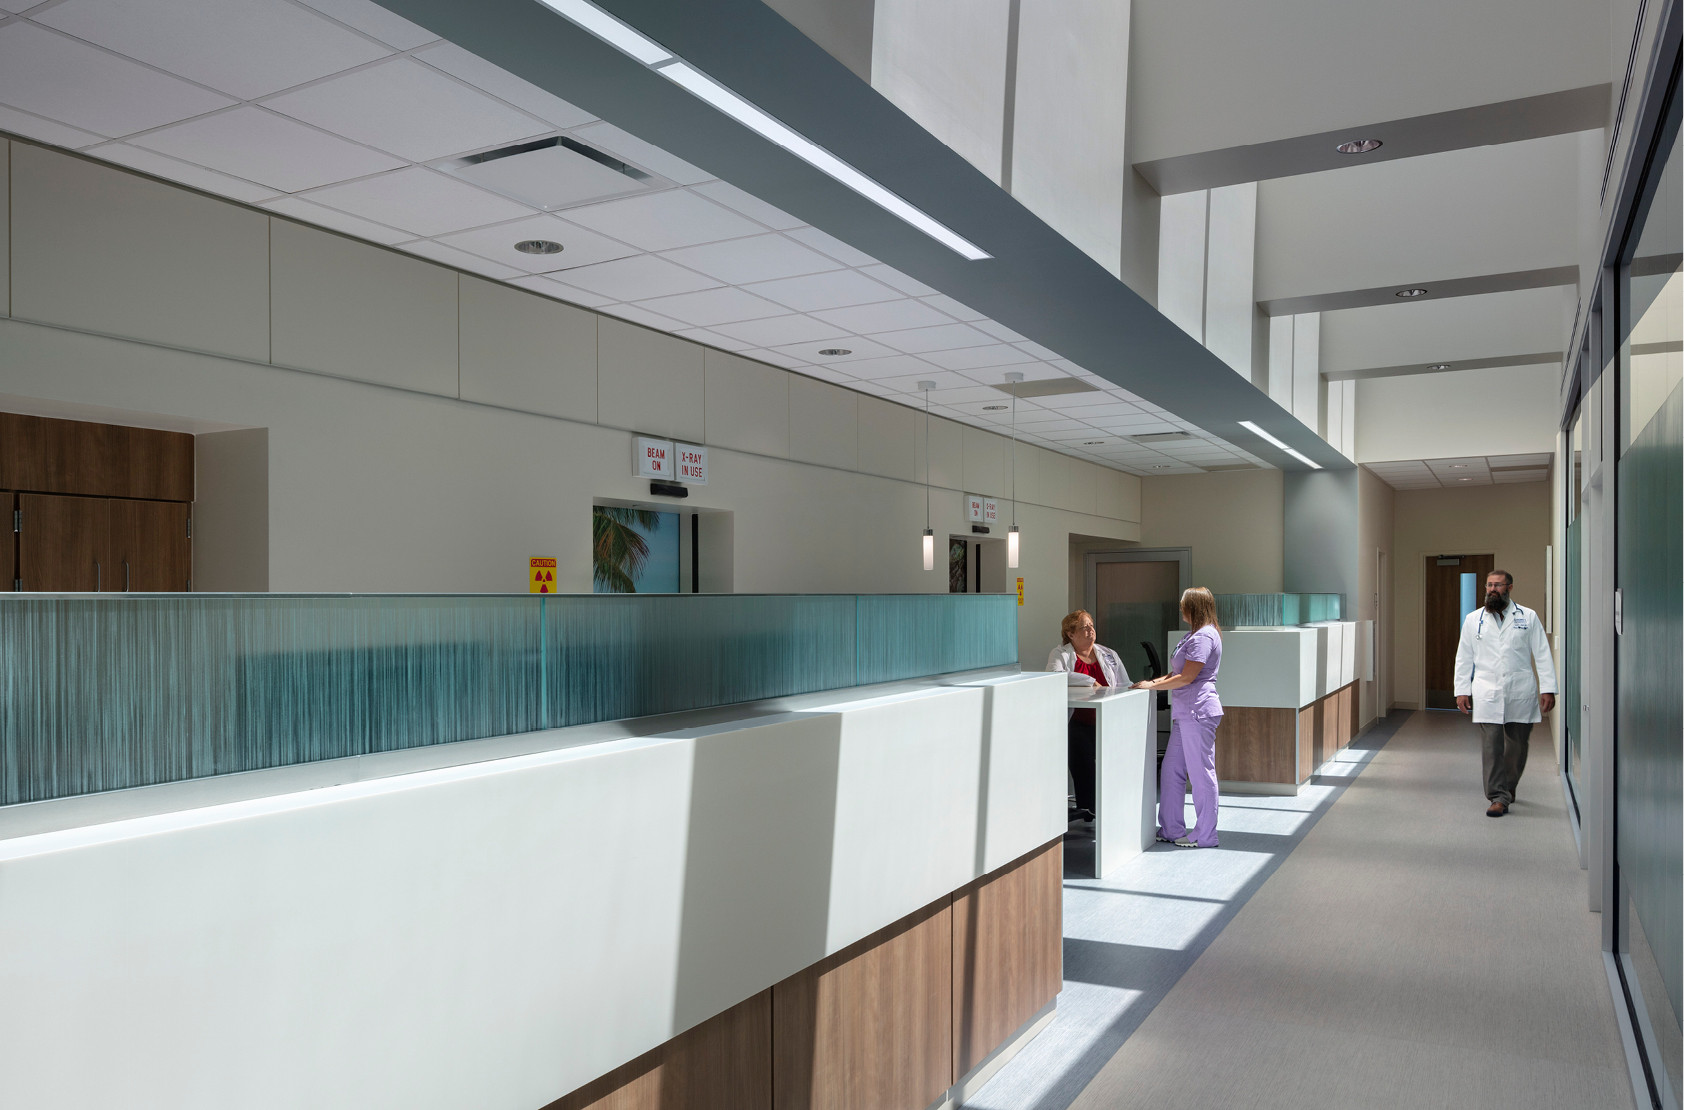 Sarasota Memorial Hospital - Radiation Oncology Center